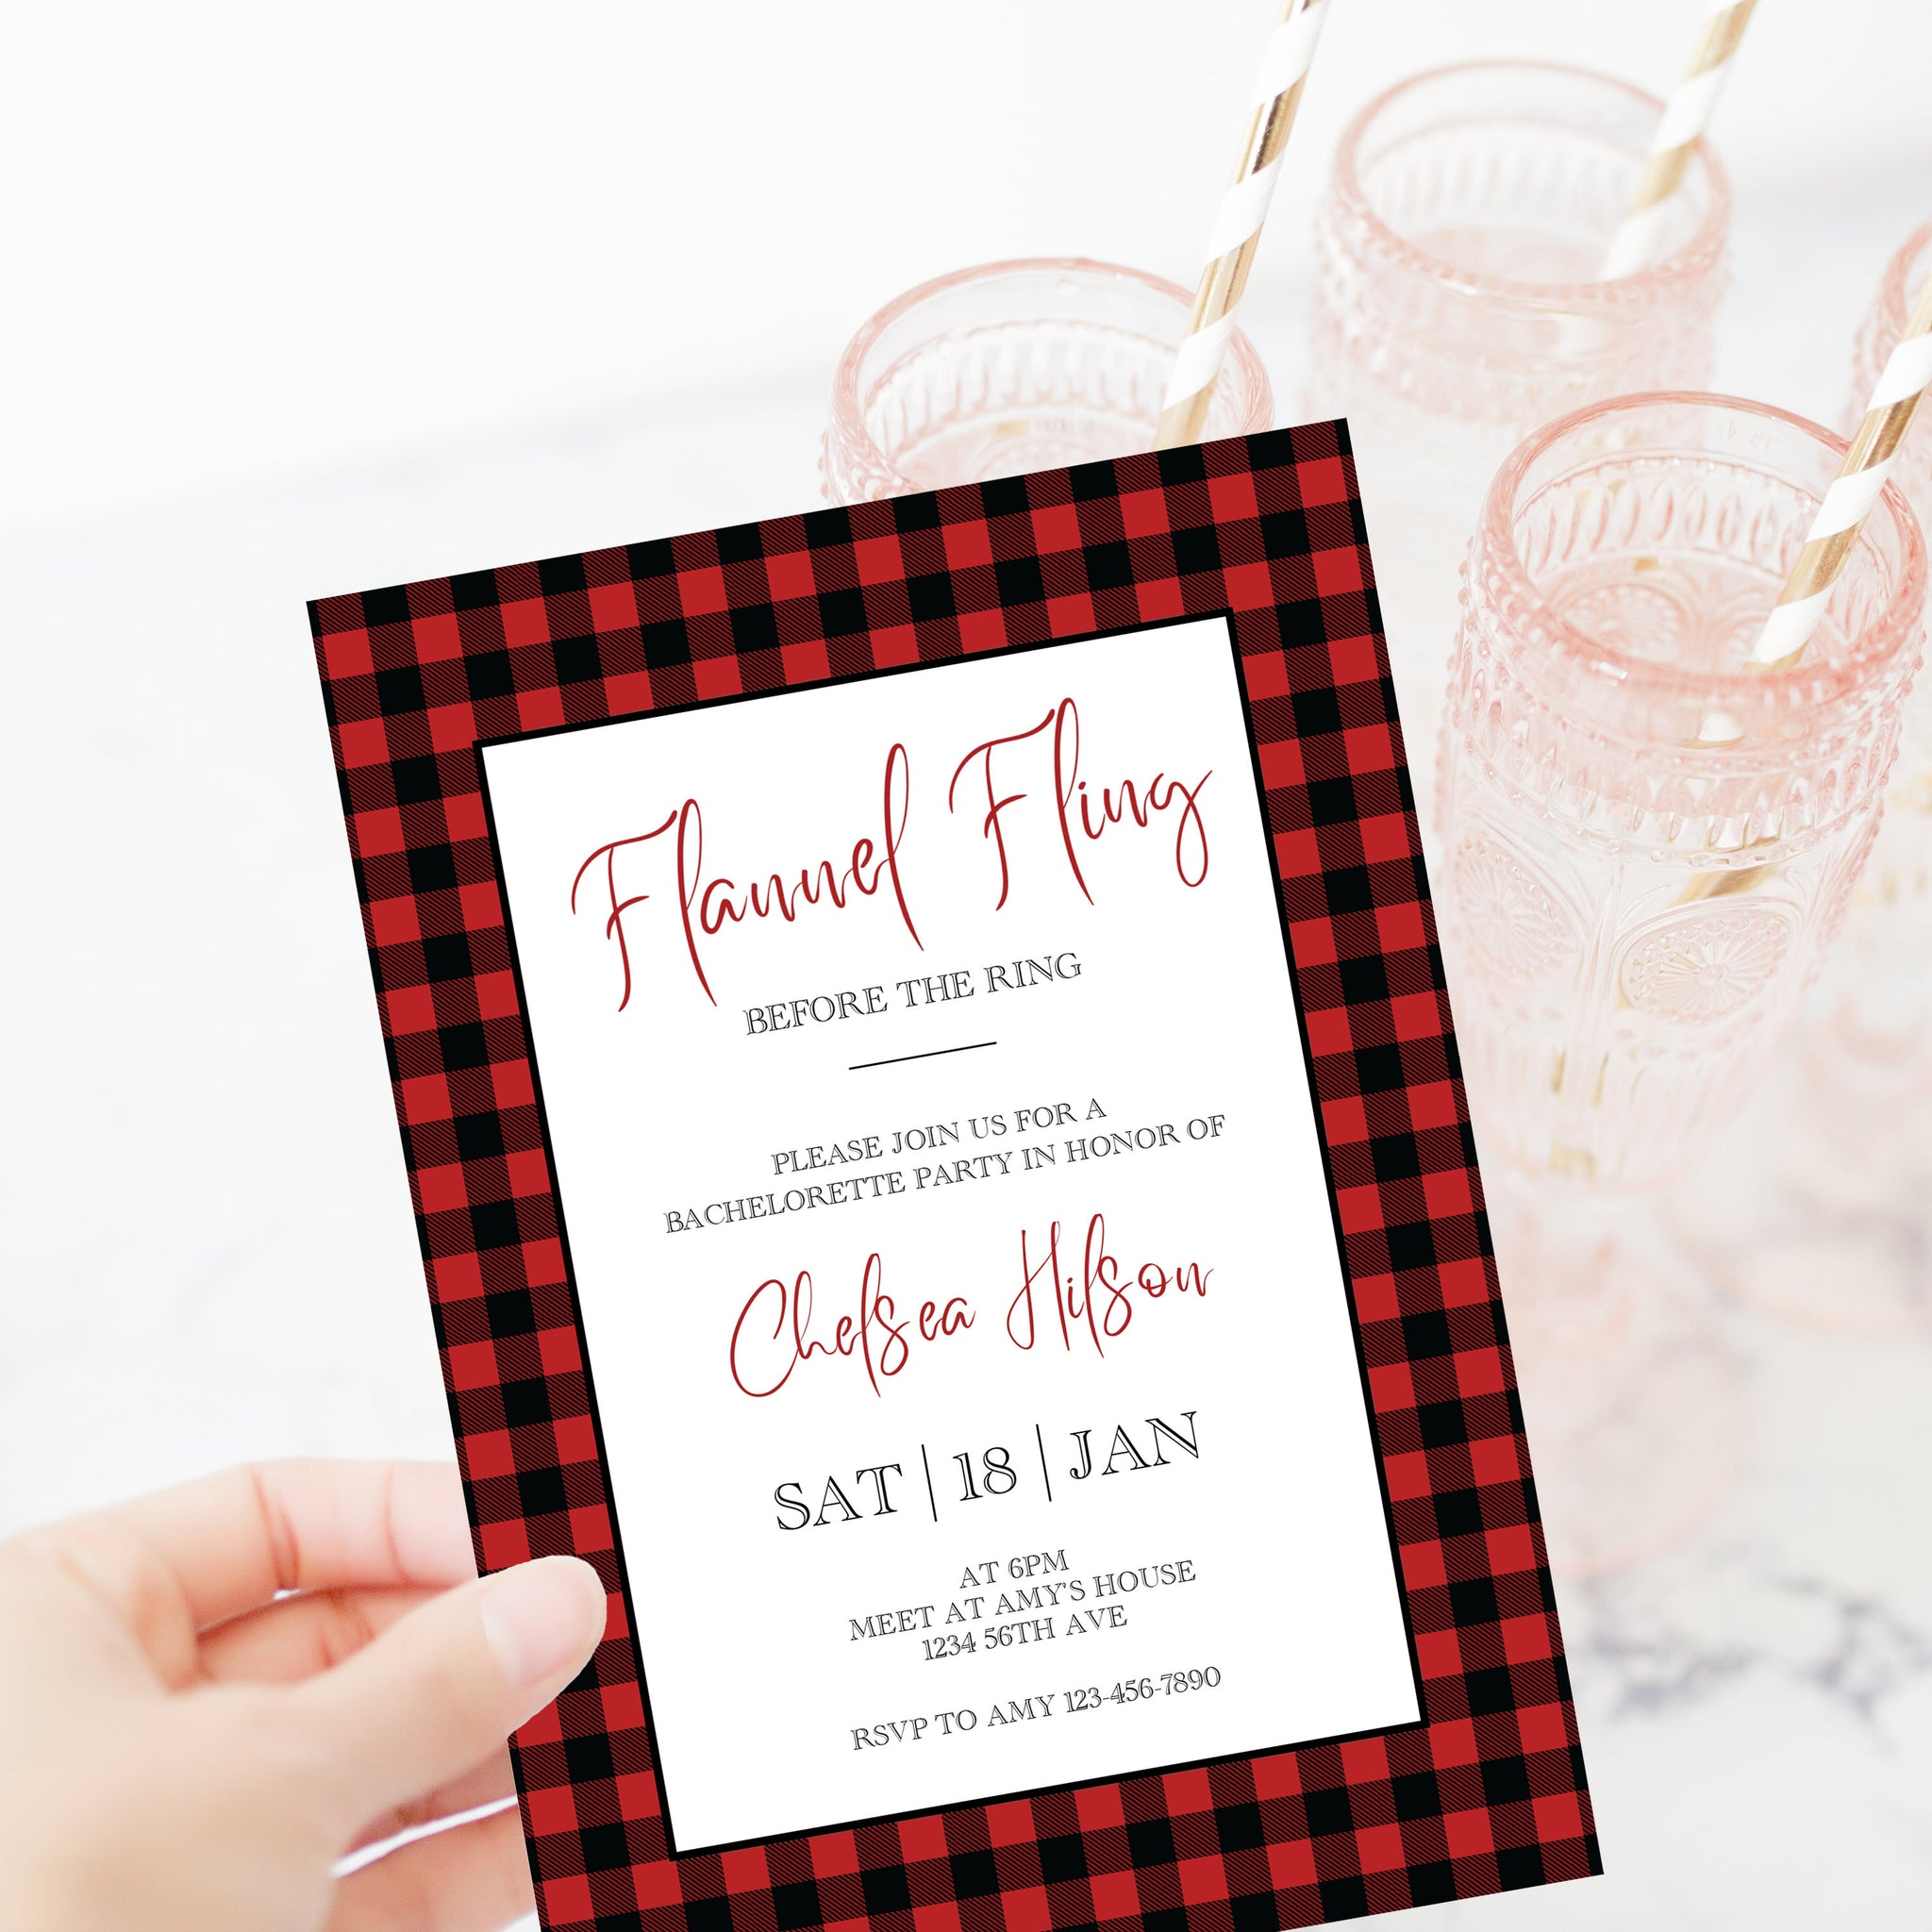 Flannel Fling Before The Ring Invitation Template, Flannel Bachelorette Party Invite, Buffalo Plaid, Editable DIGITAL DOWNLOAD - BP100 - @PlumPolkaDot